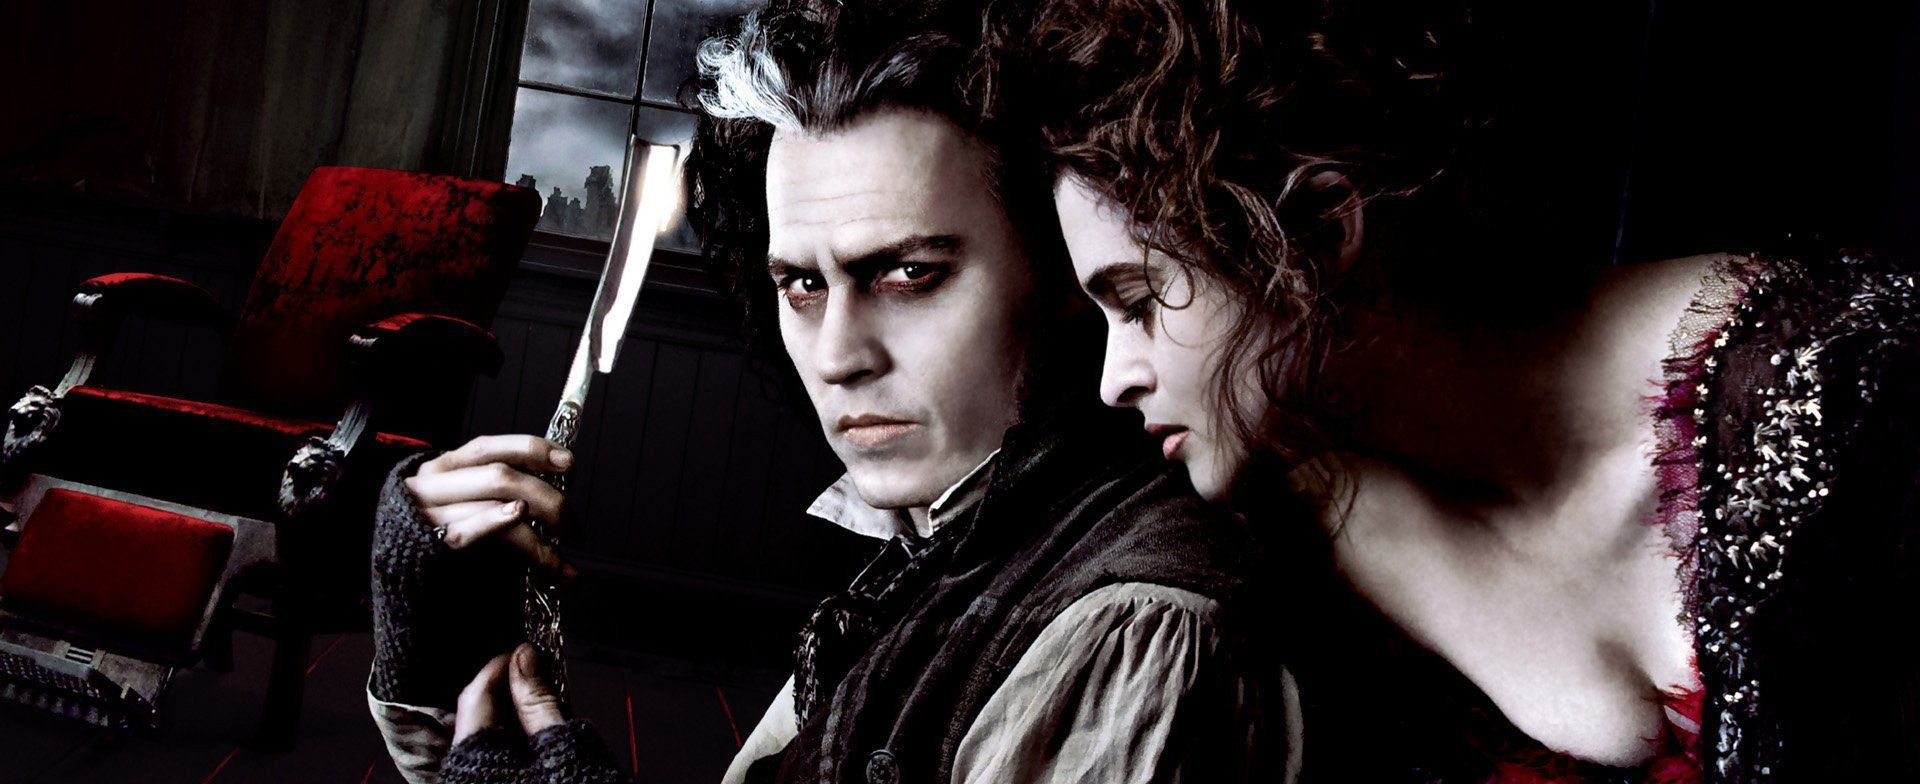 Photo Sweeney Todd, le diabolique barbier de Fleet Street